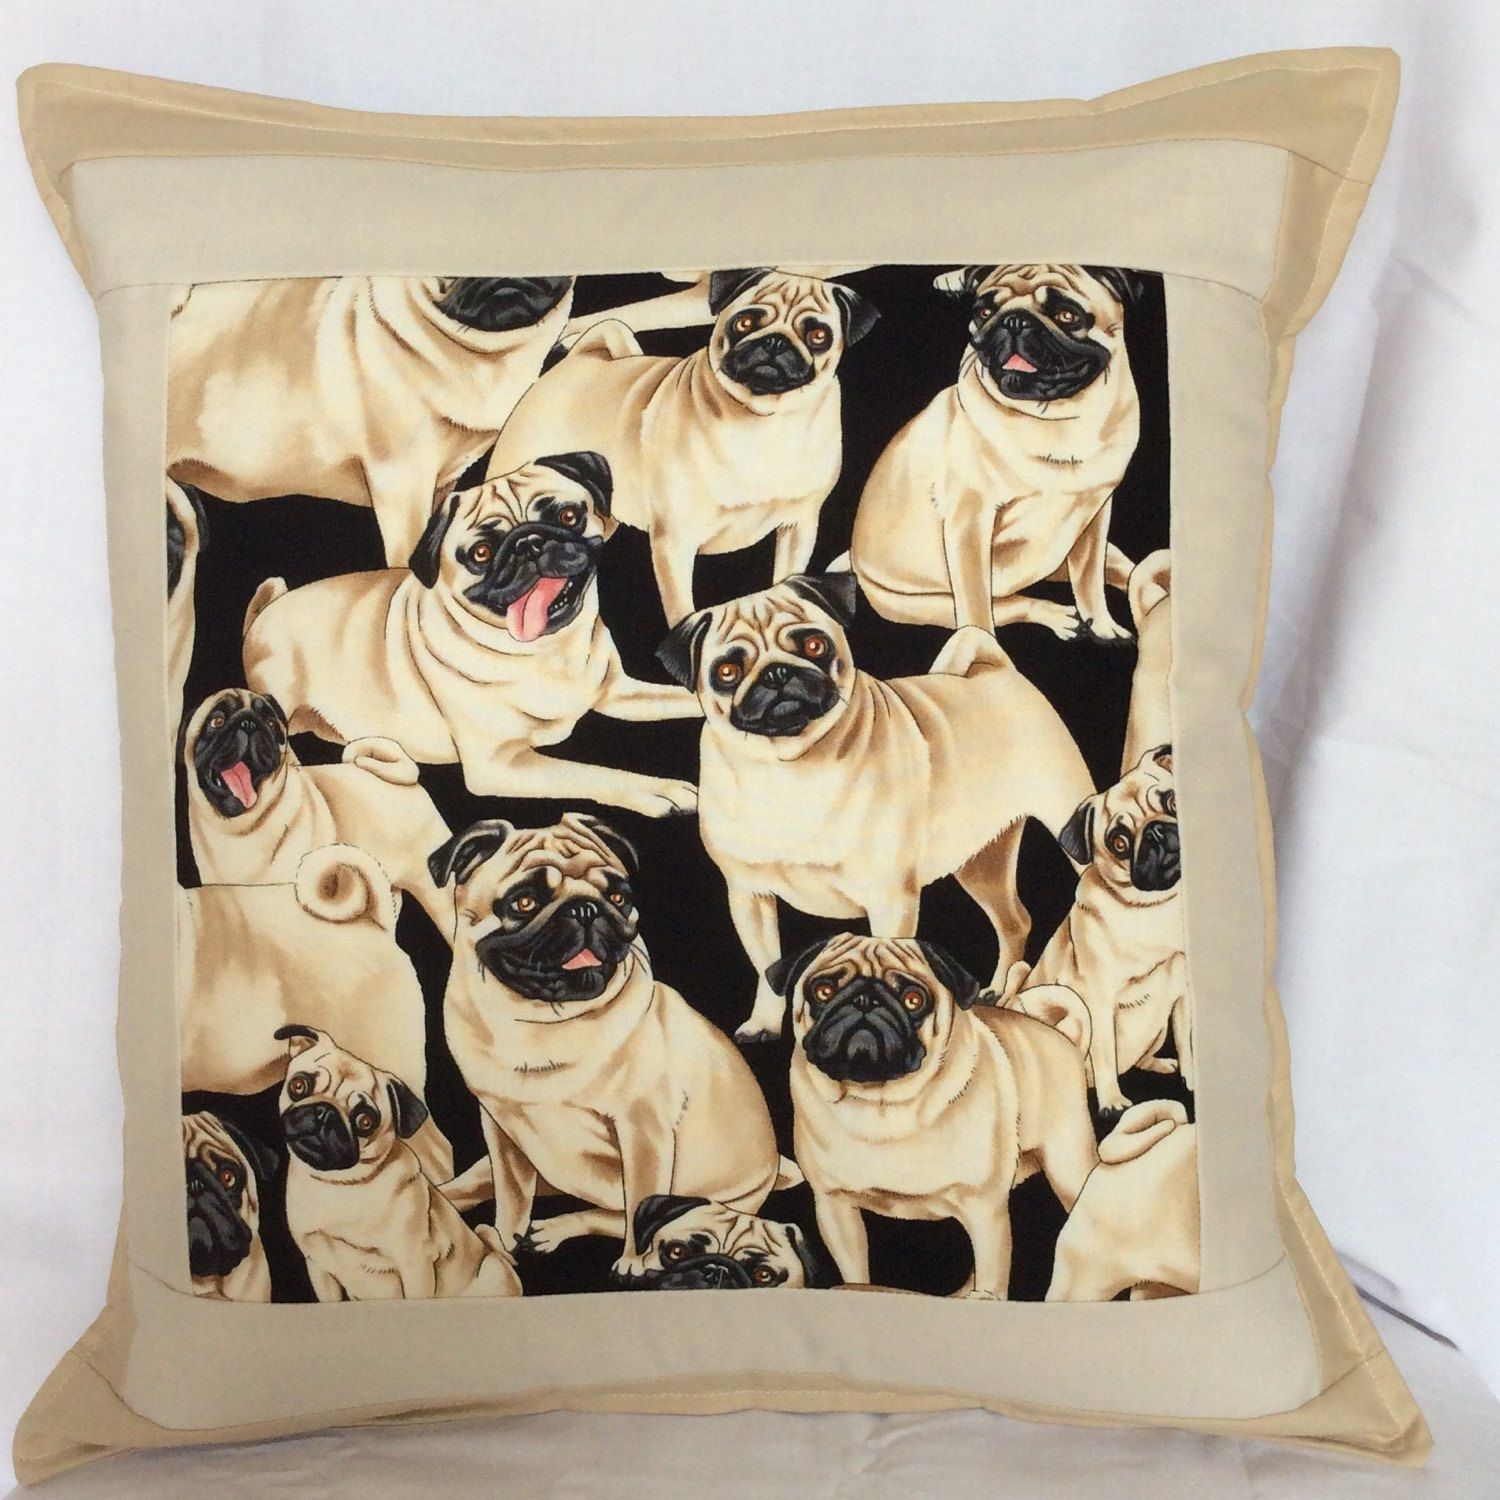 For PUG lovers 😍